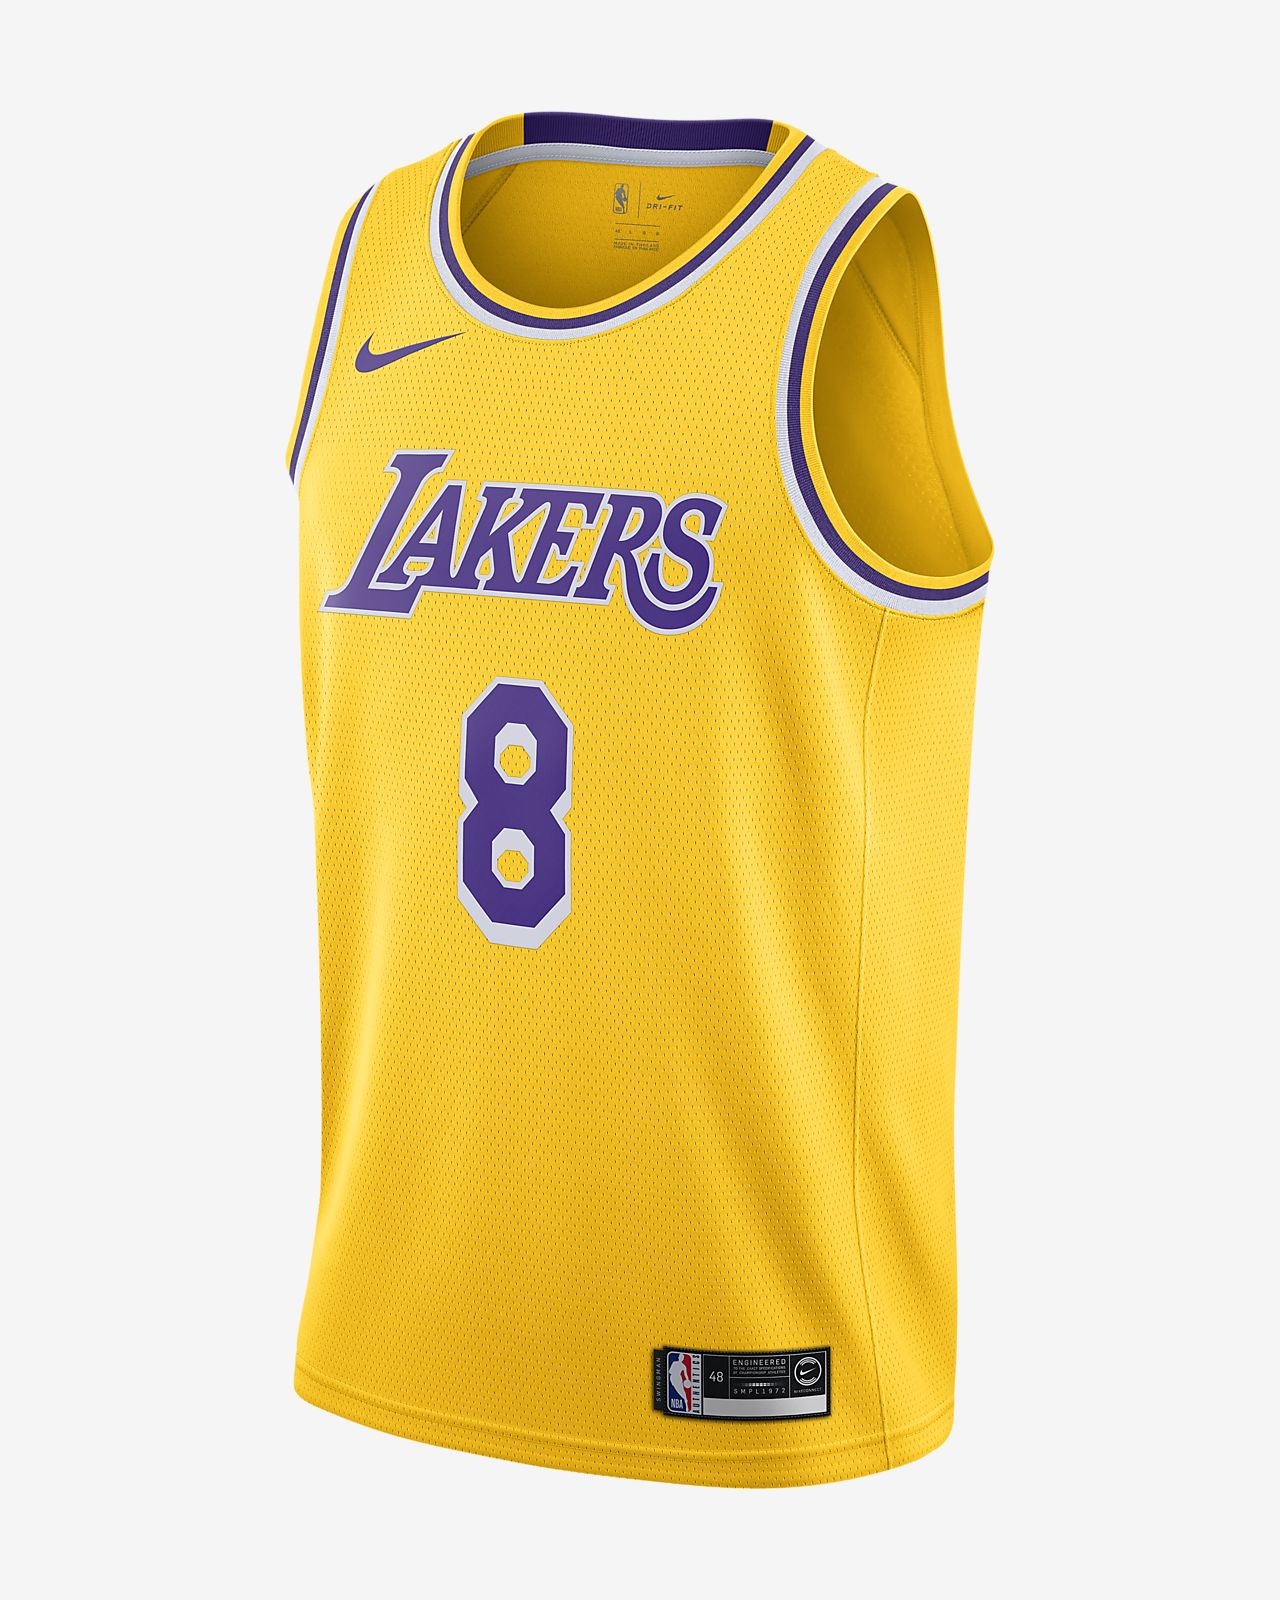 洛杉矶湖人队 (Kobe Bryant) Icon Edition Swingman Nike NBA Connected Jersey 男子球衣